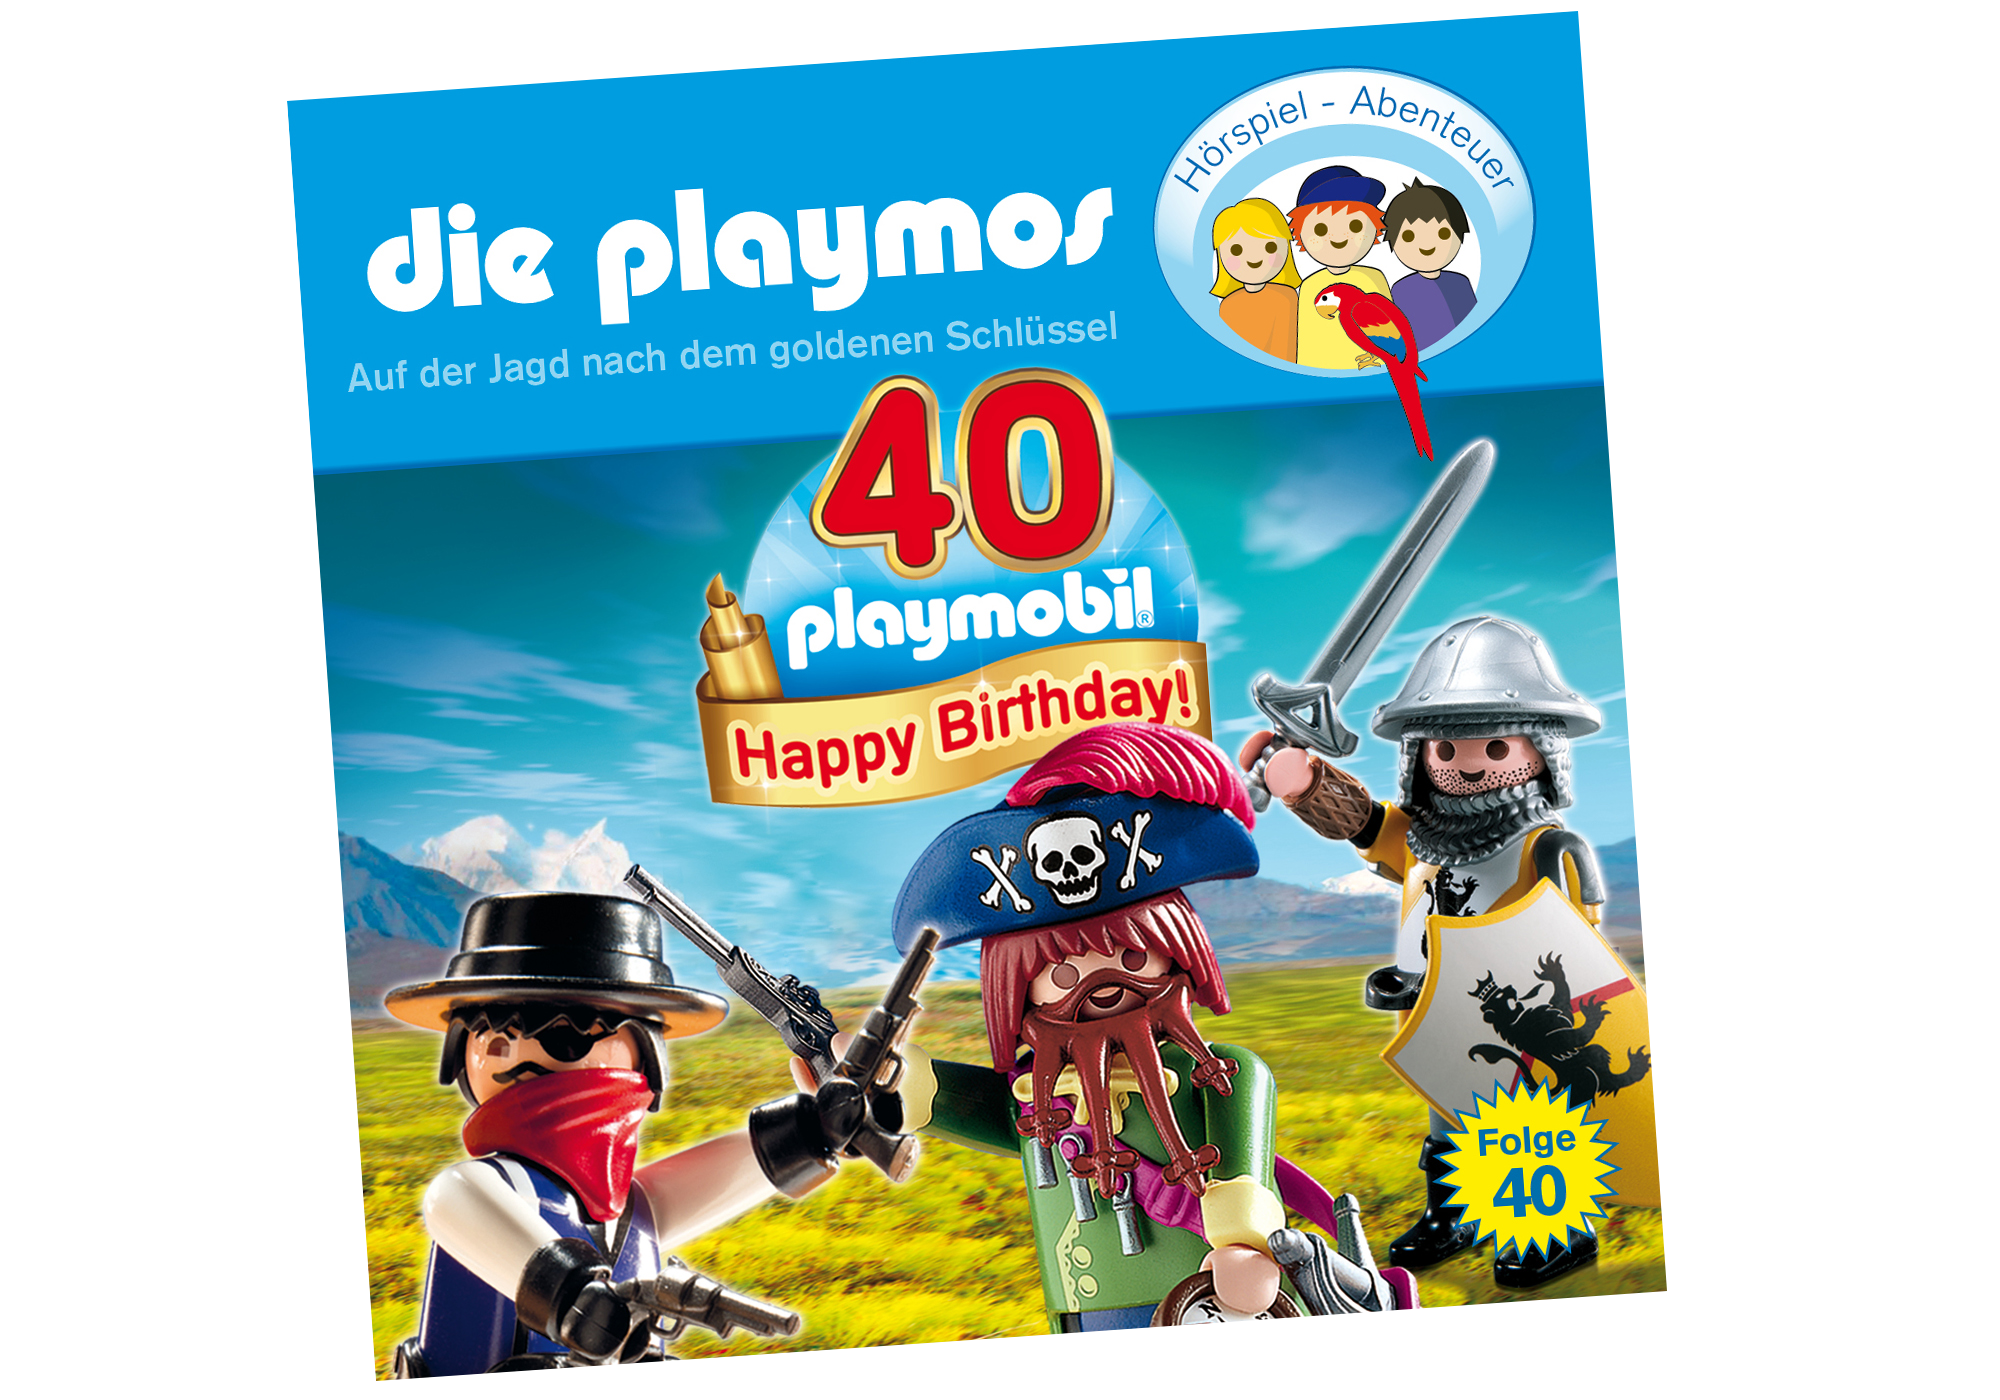 http://media.playmobil.com/i/playmobil/80453_product_detail